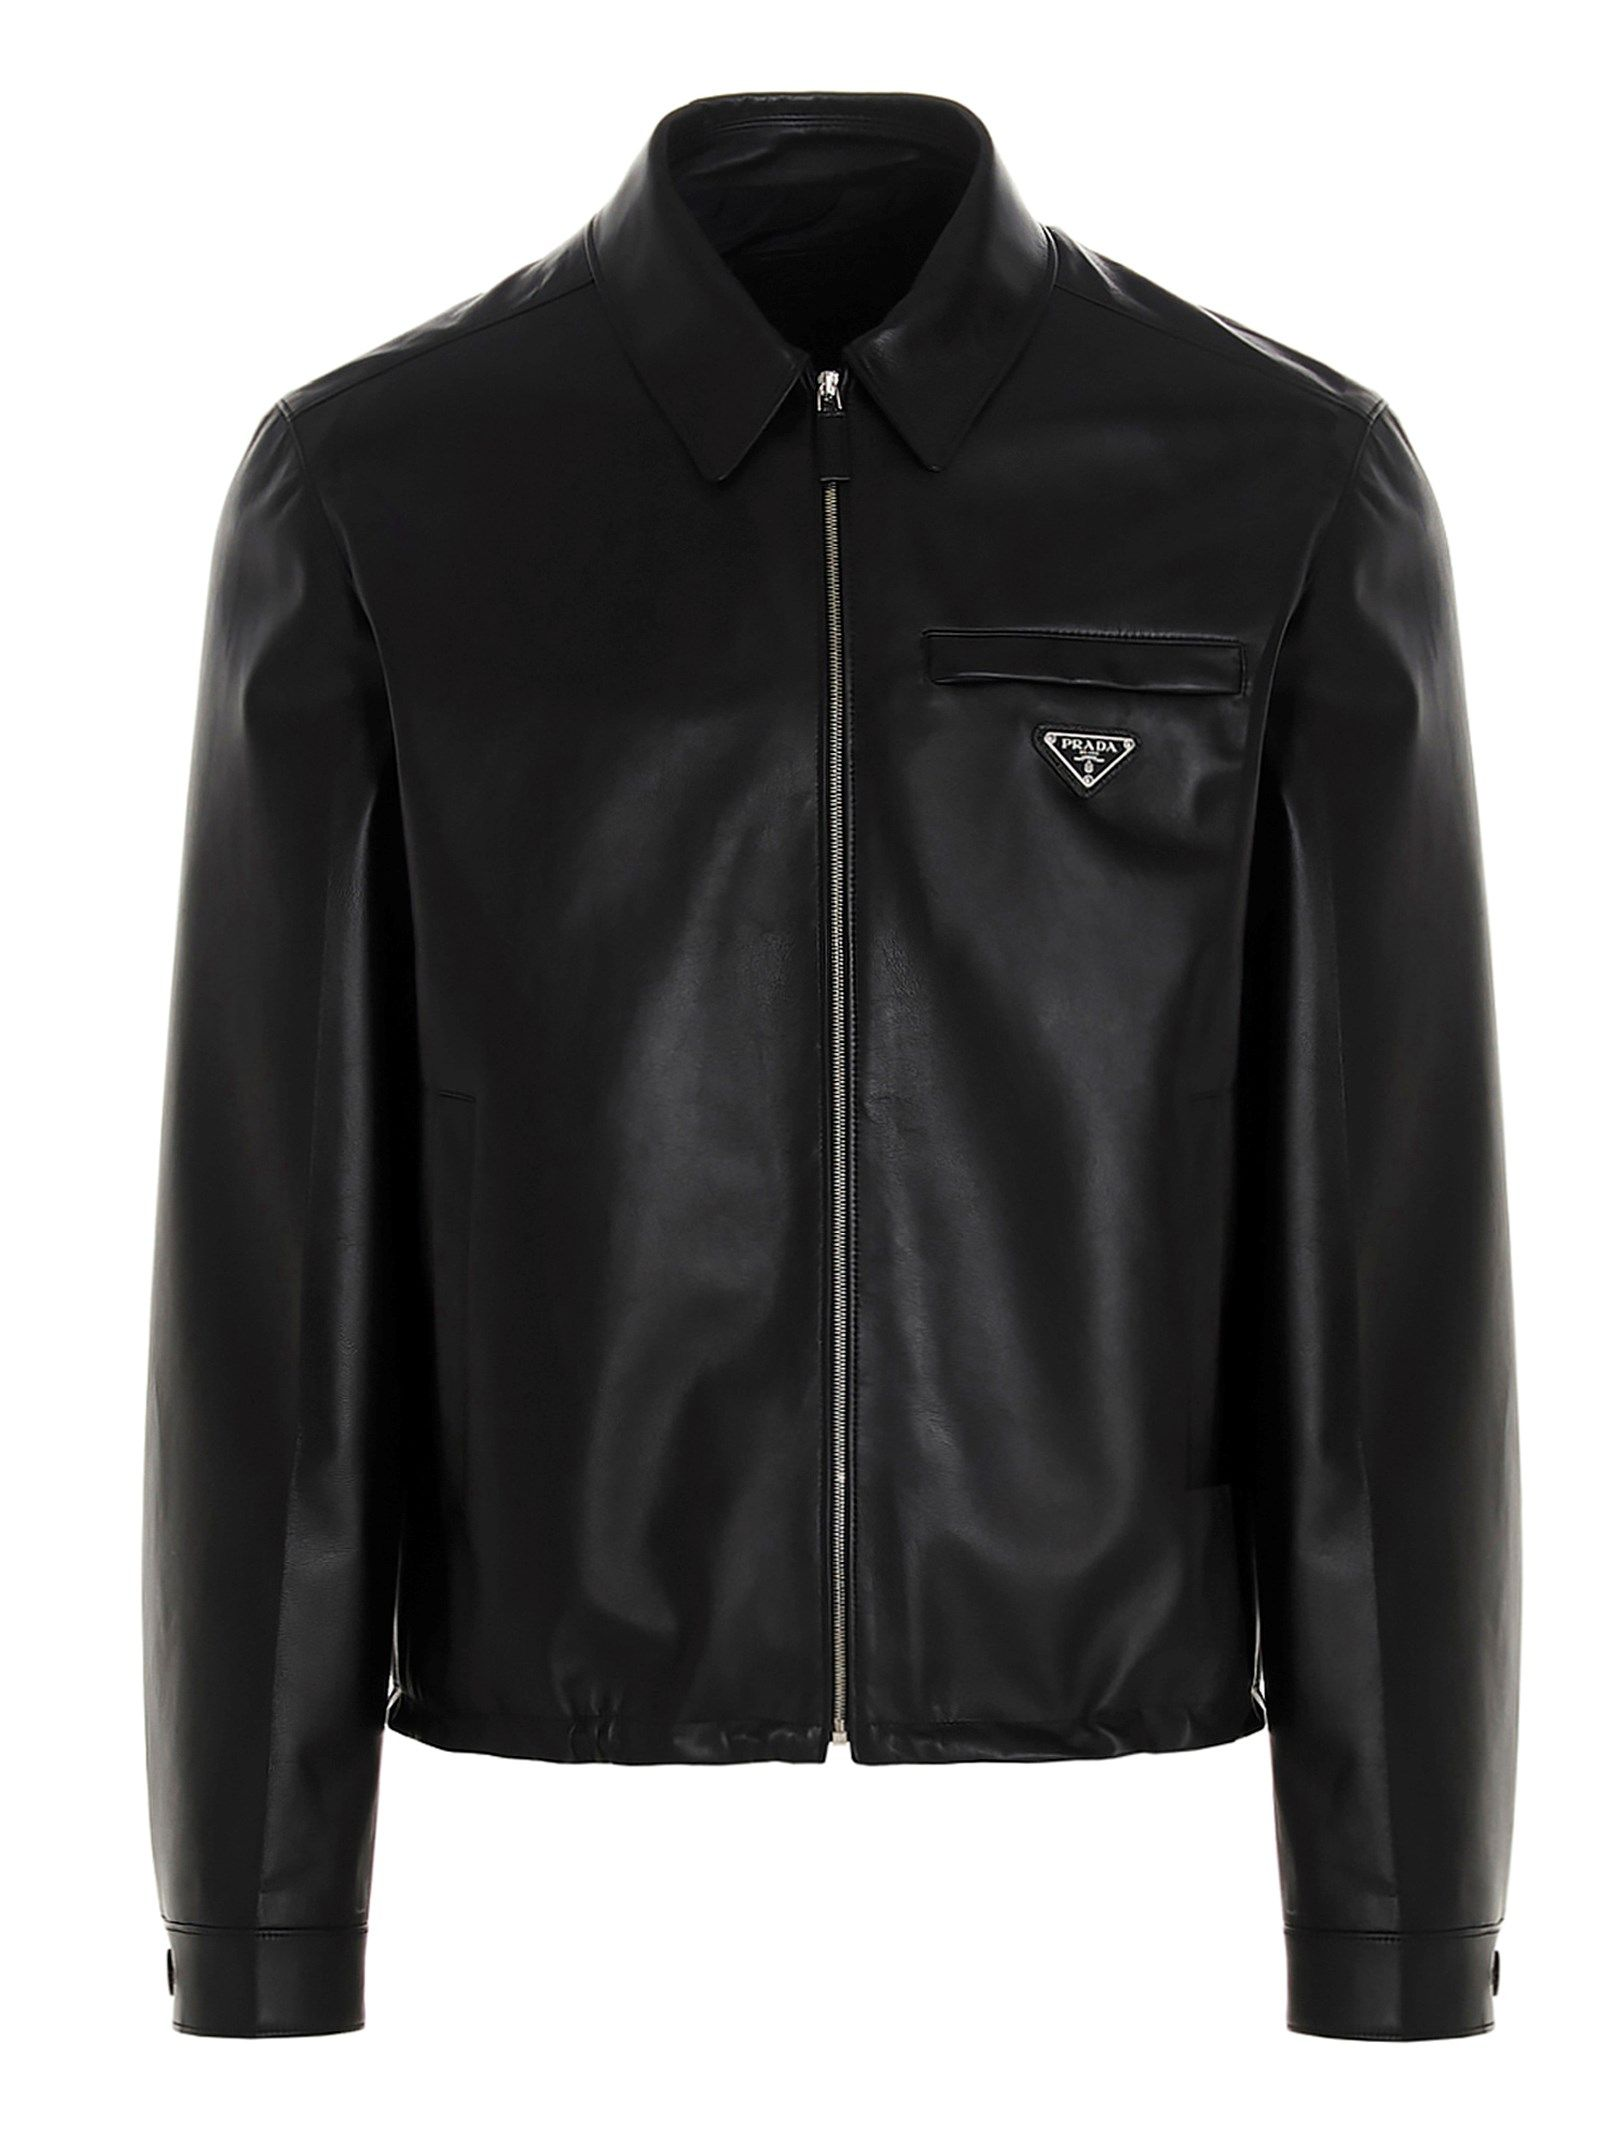 Prada PRADA MEN'S BLACK OTHER MATERIALS OUTERWEAR JACKET